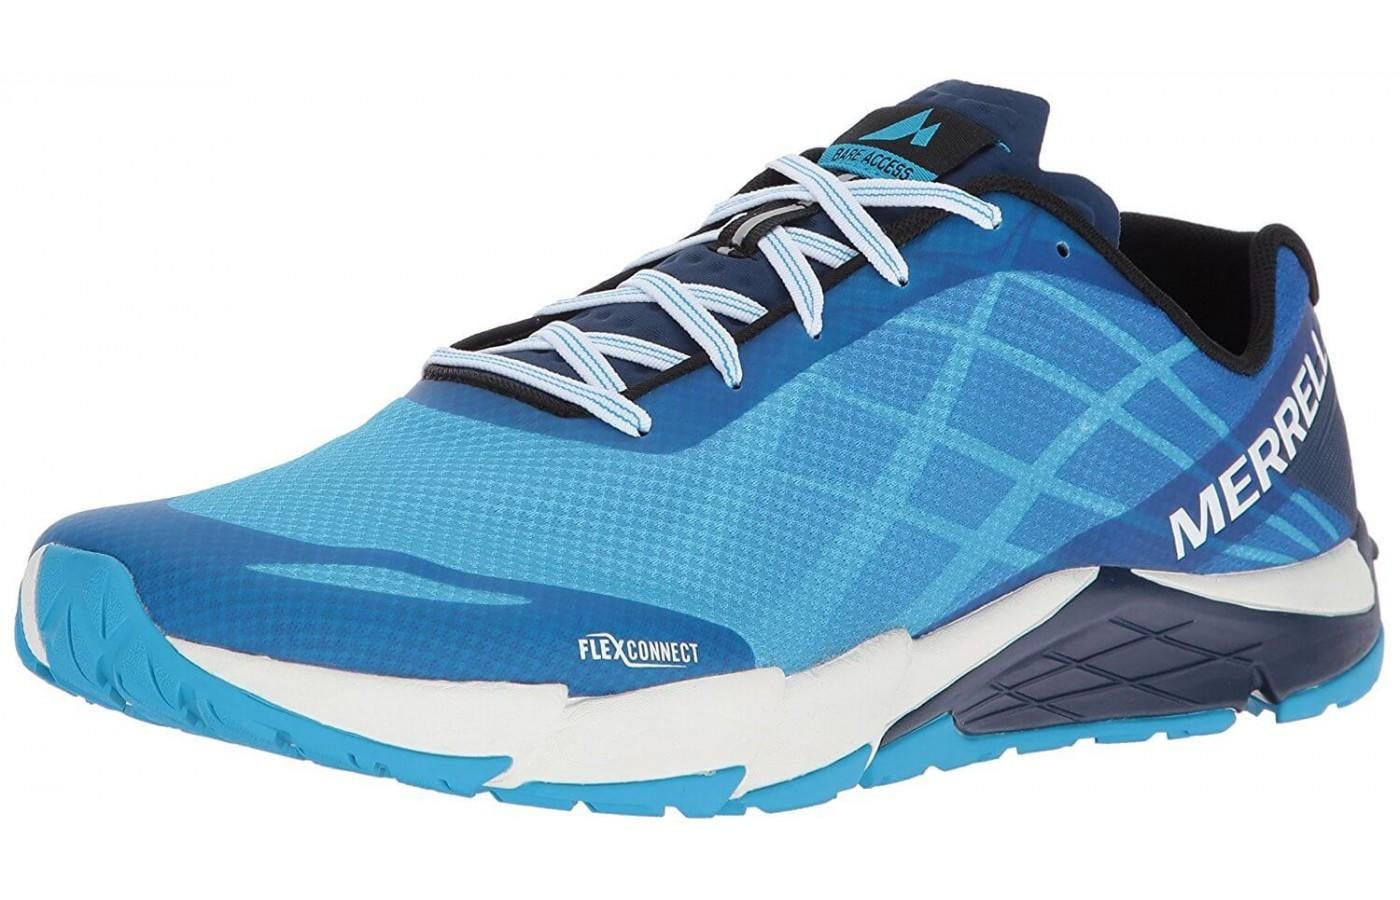 The Merrel Bare Access Flex is a zero drop, all terrain shoe.